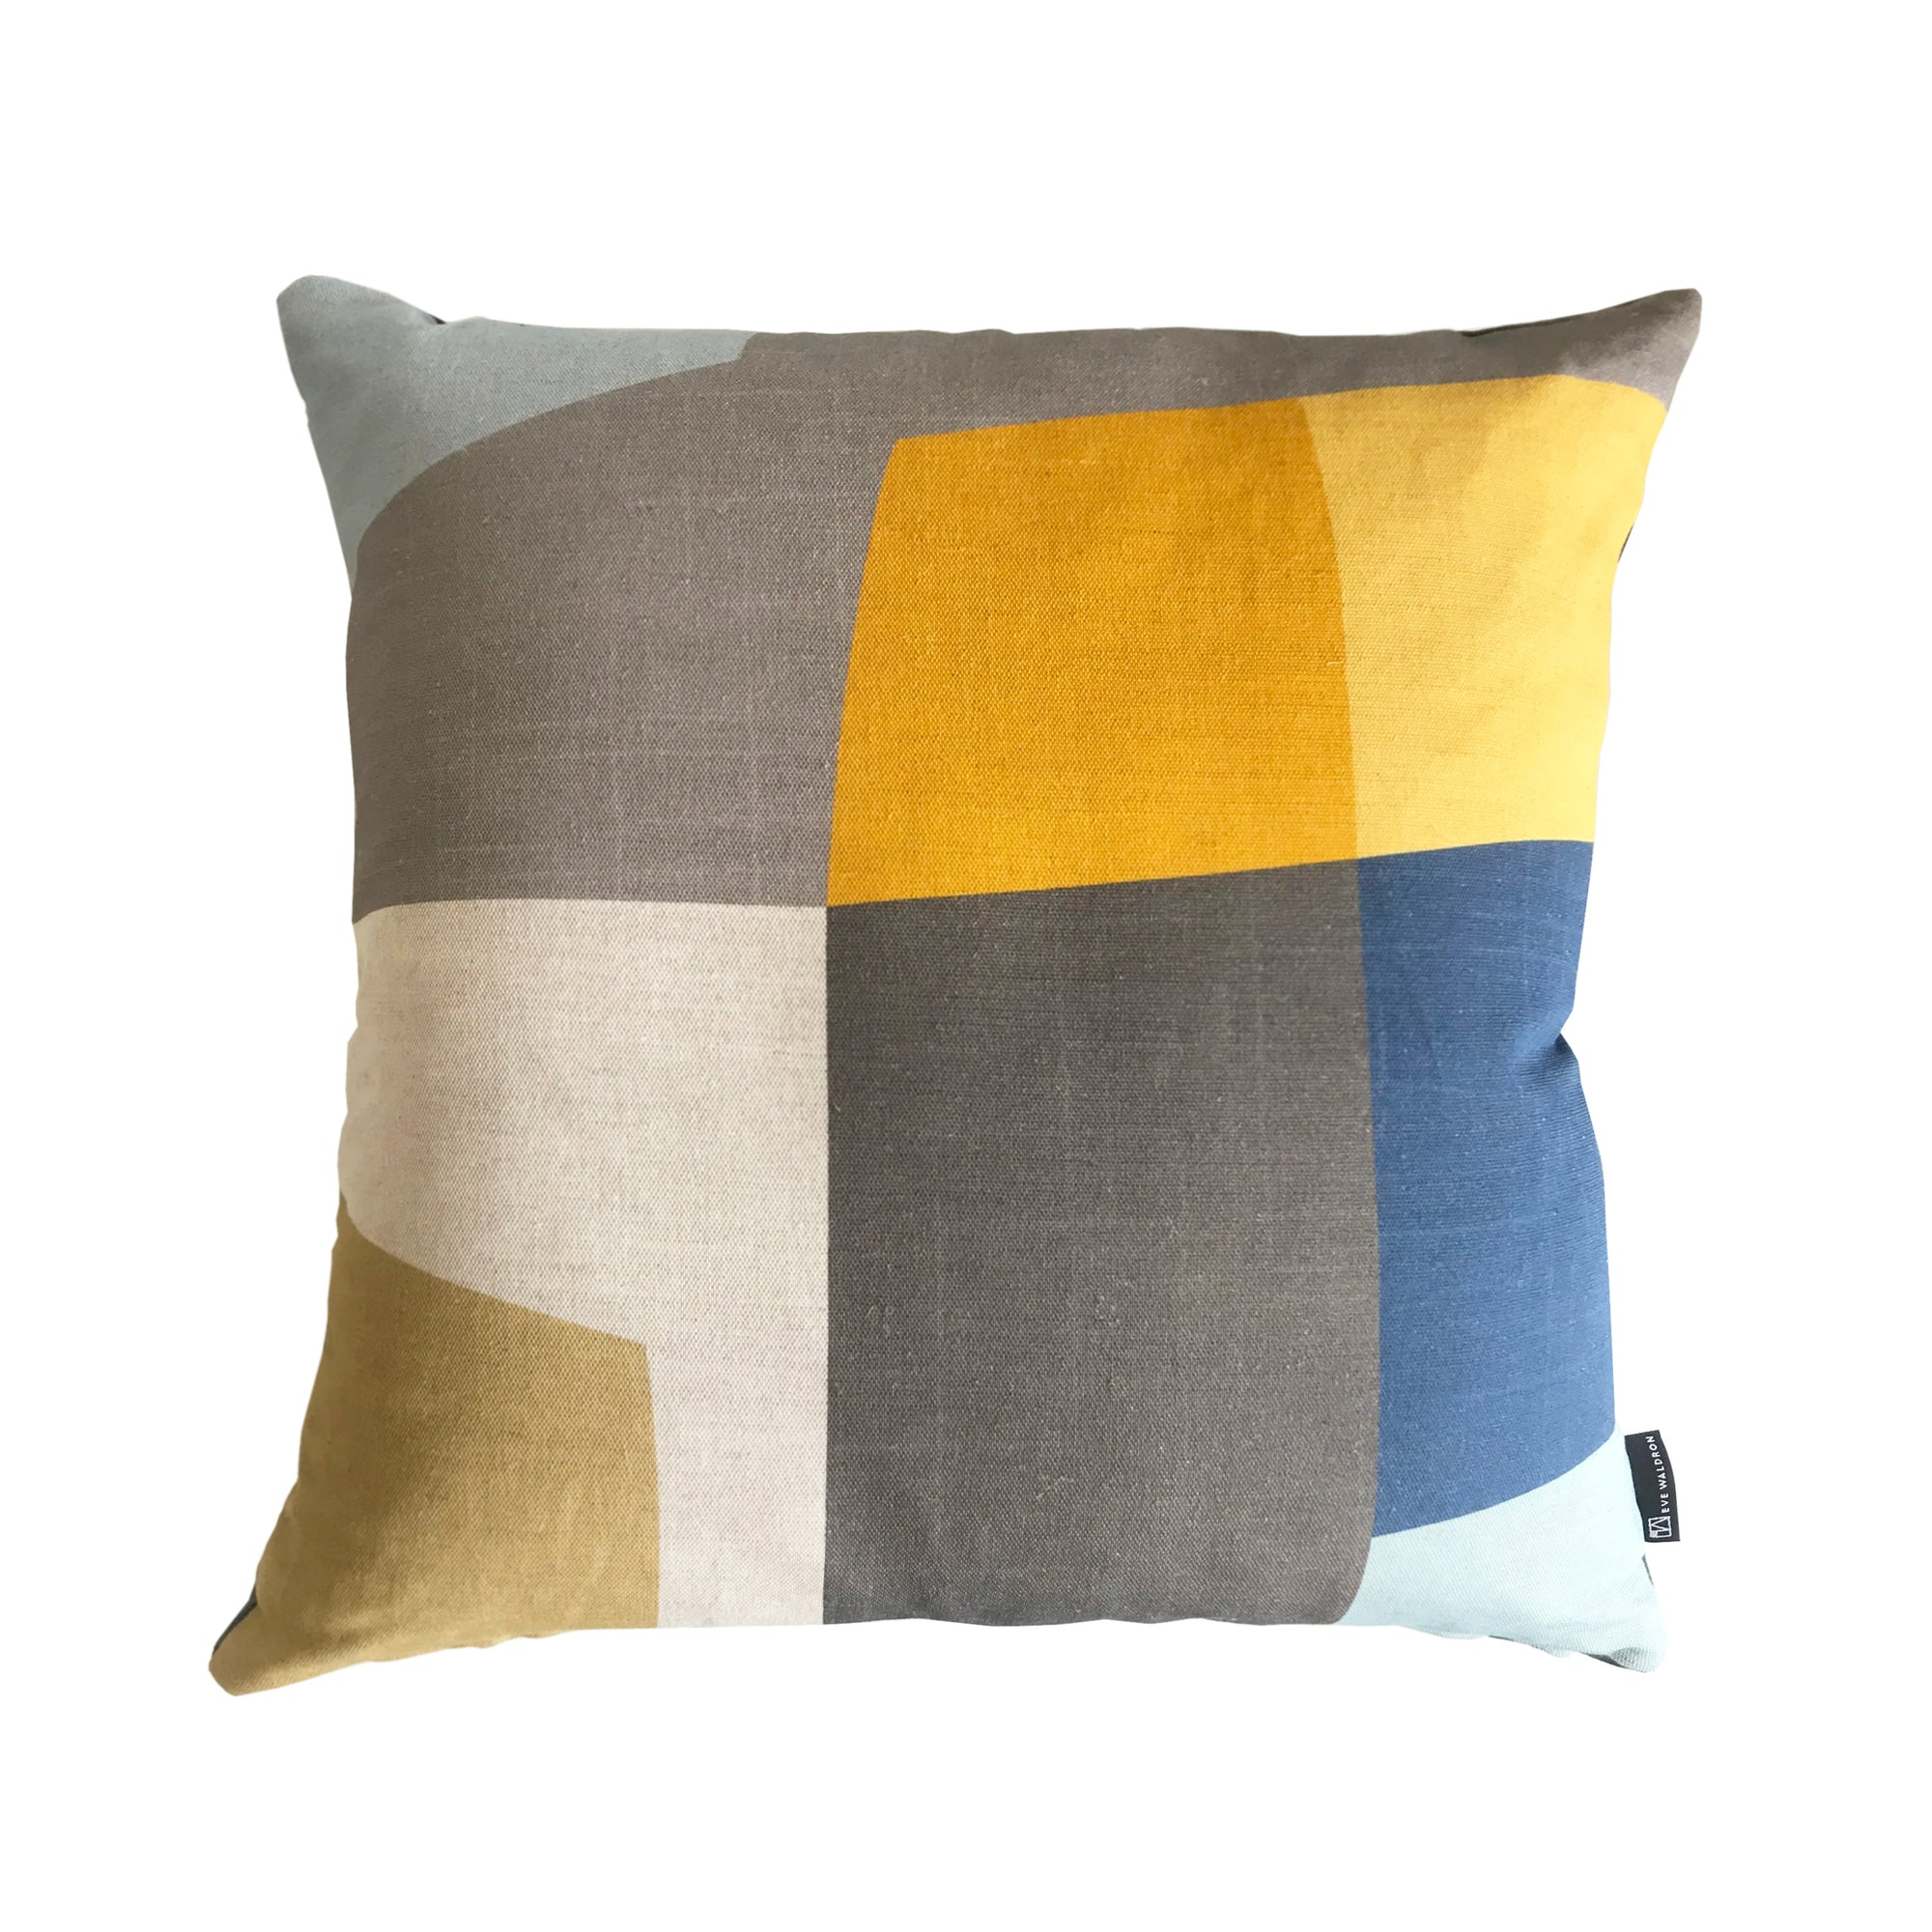 Eve Waldron Design Office Cushion Gold Blue Windows 500 x 500mm